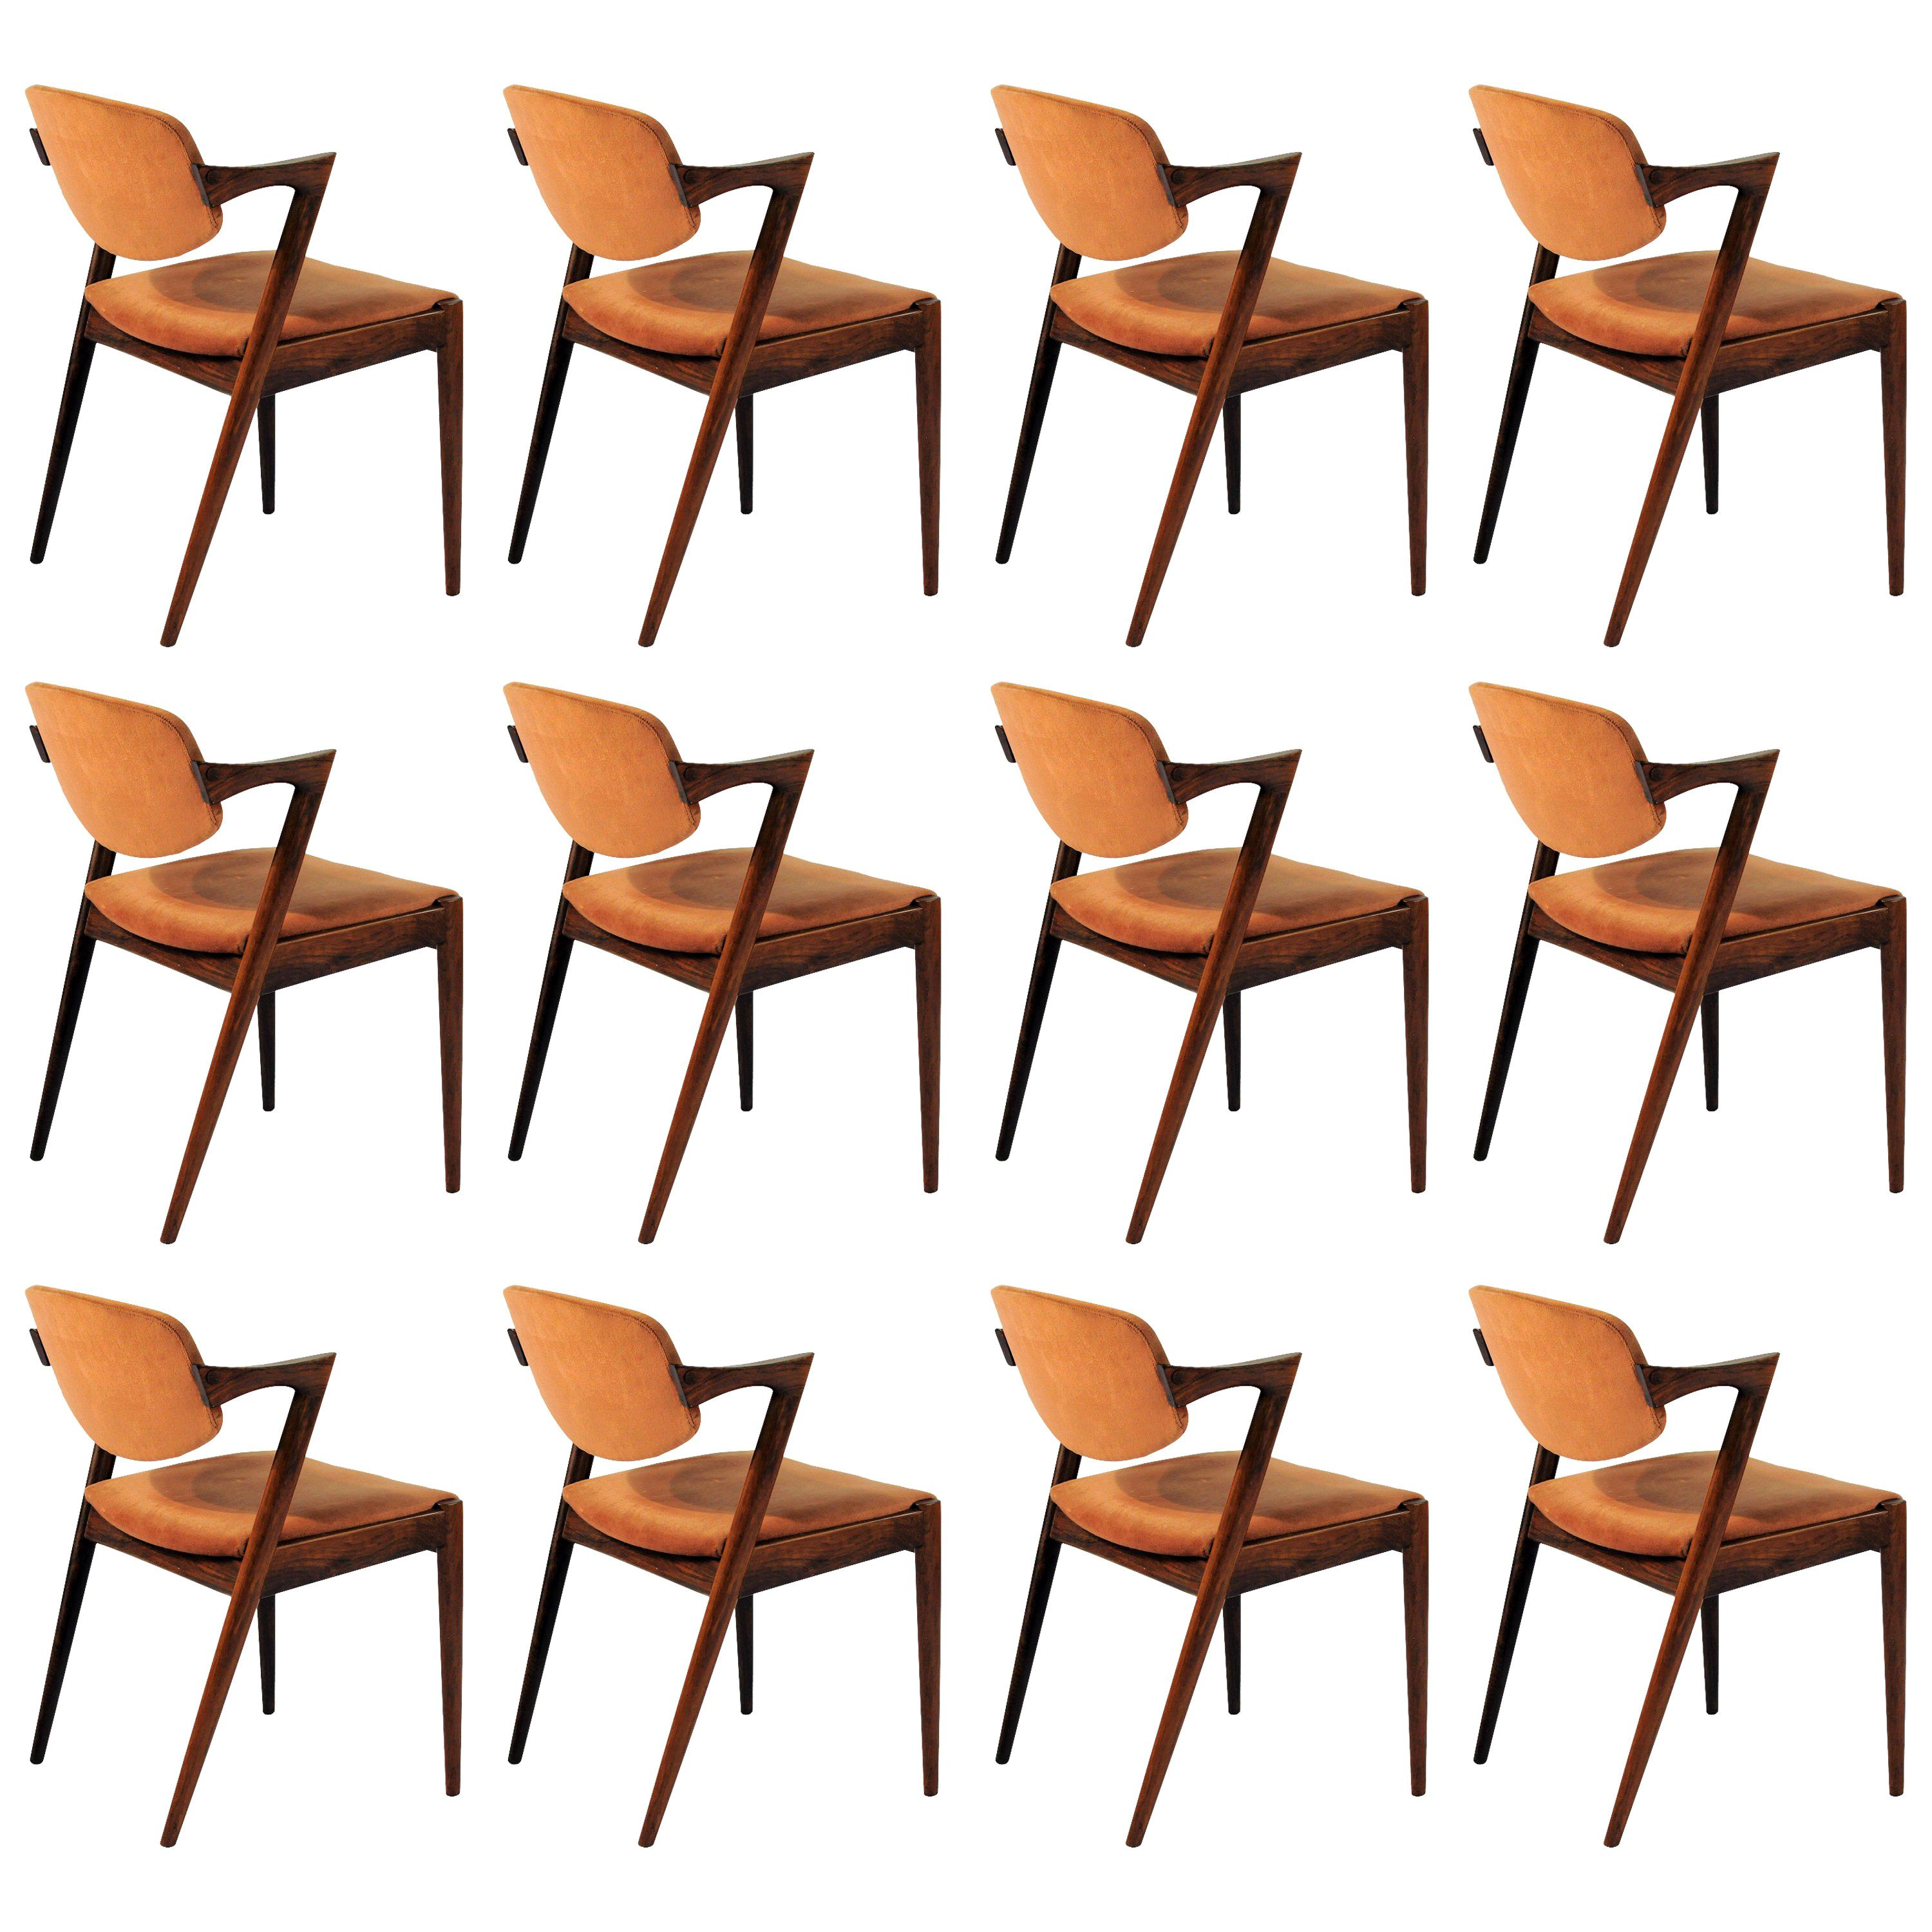 Twelve Kai Kristiansen Refinished Rosewood Dining Chairs, Inc. Reupholstery